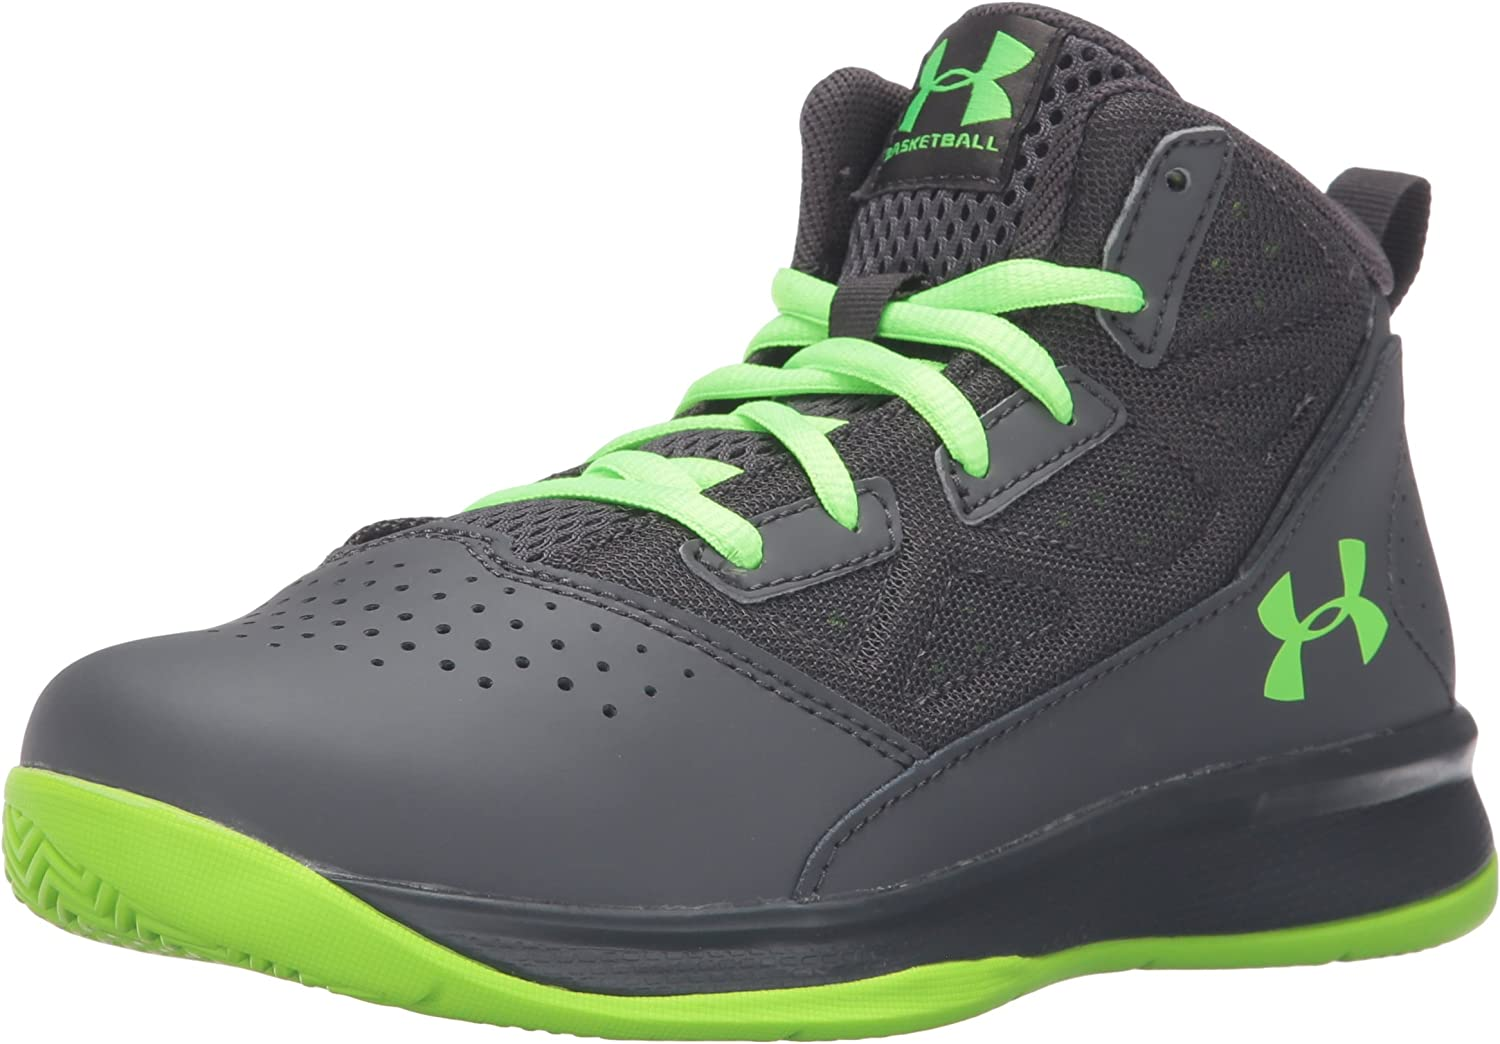 9 Colors Under Armour Boys/' Grade School Jet Shoes 2017